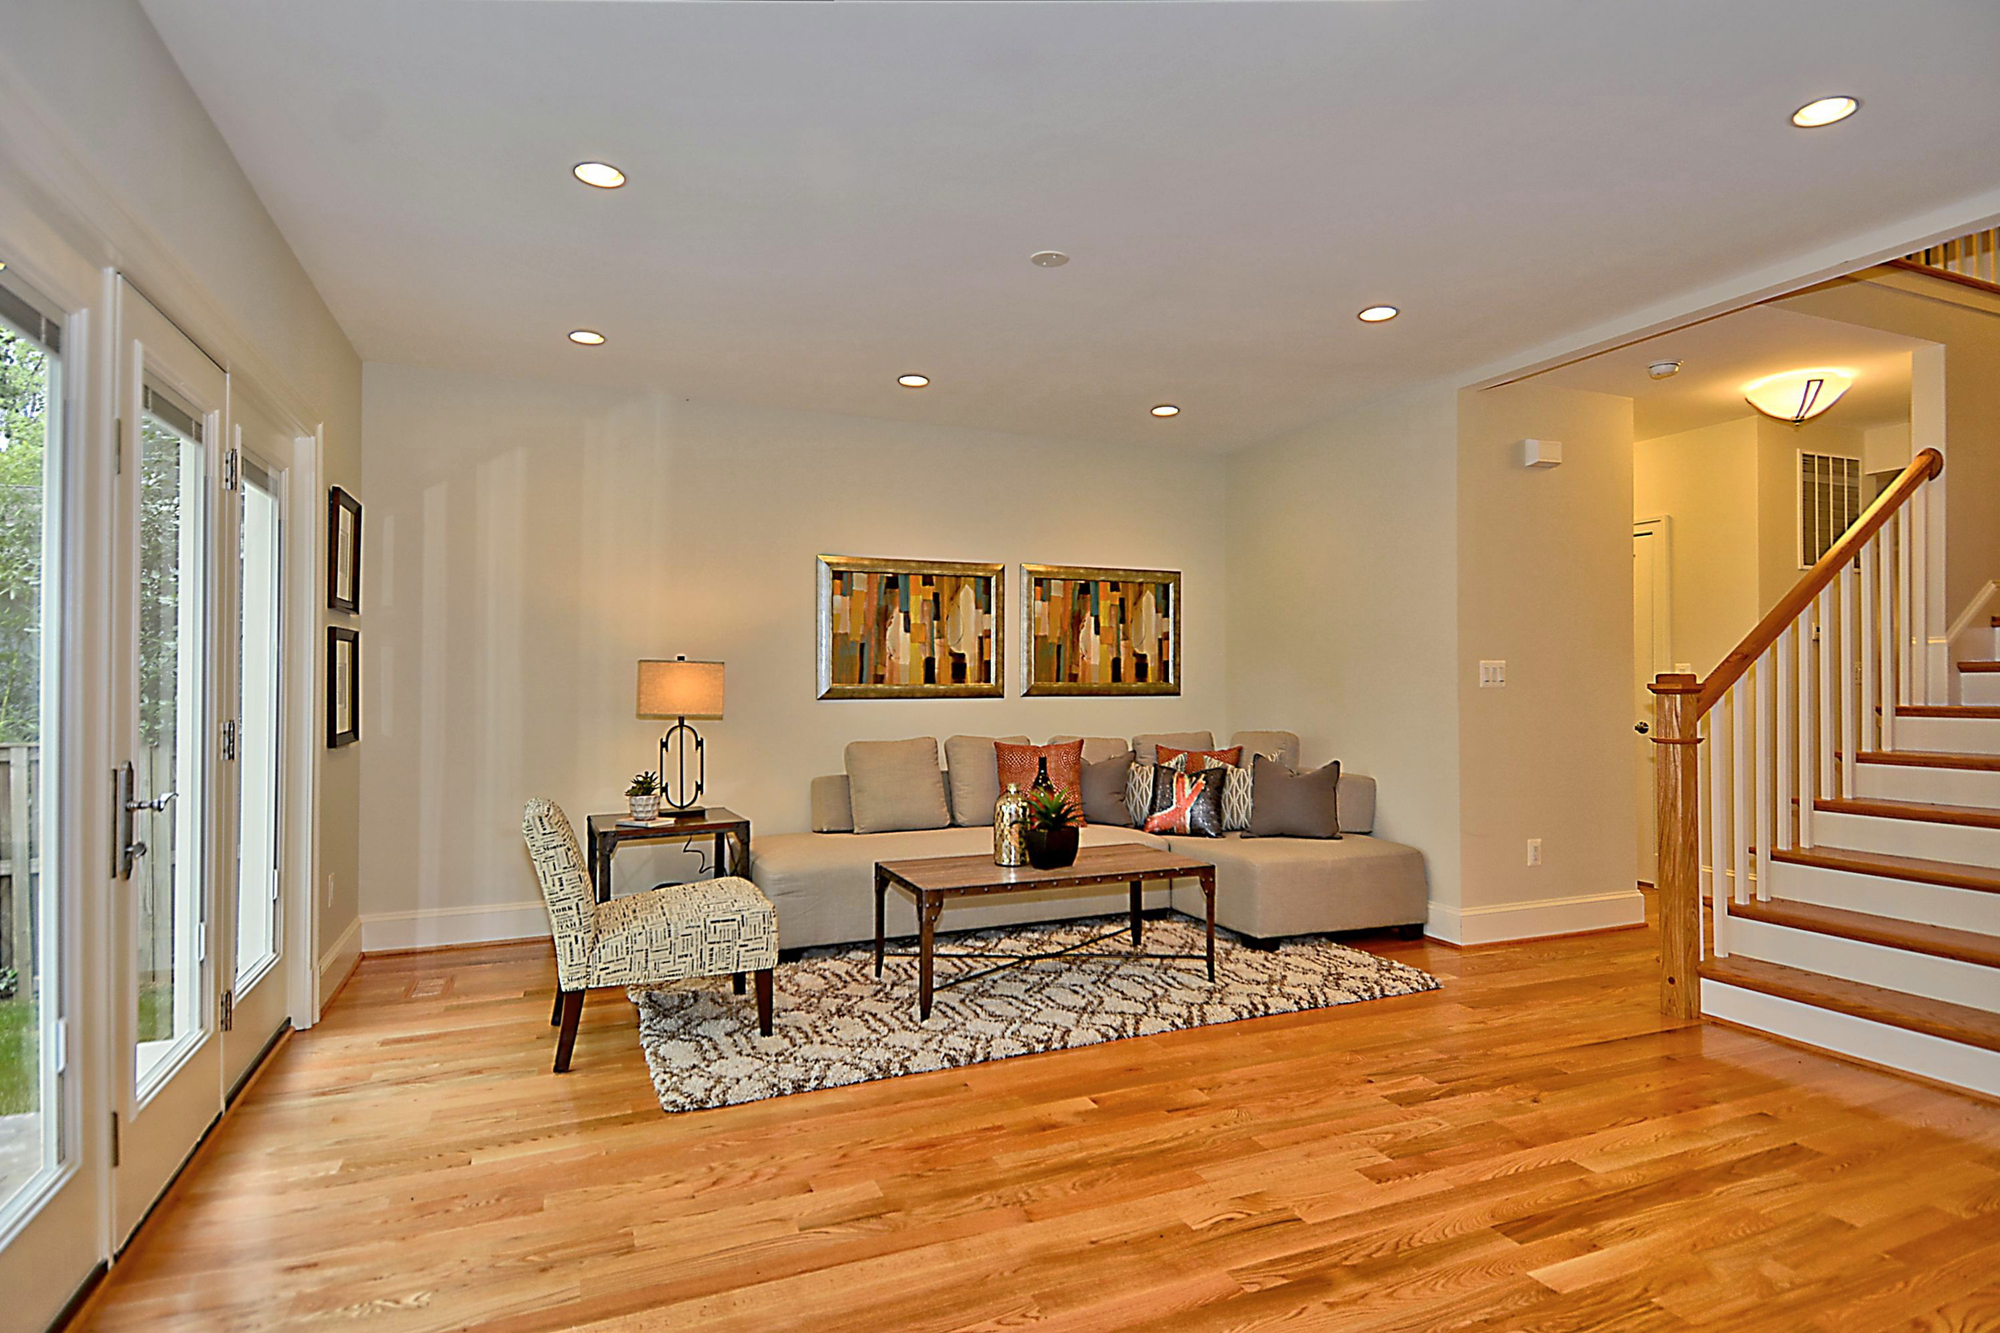 garrett park chat rooms Learn more about this condo located at 4601 park avenue # 815q which has 1 beds, 1 baths, 921 square feet and has been on the market.